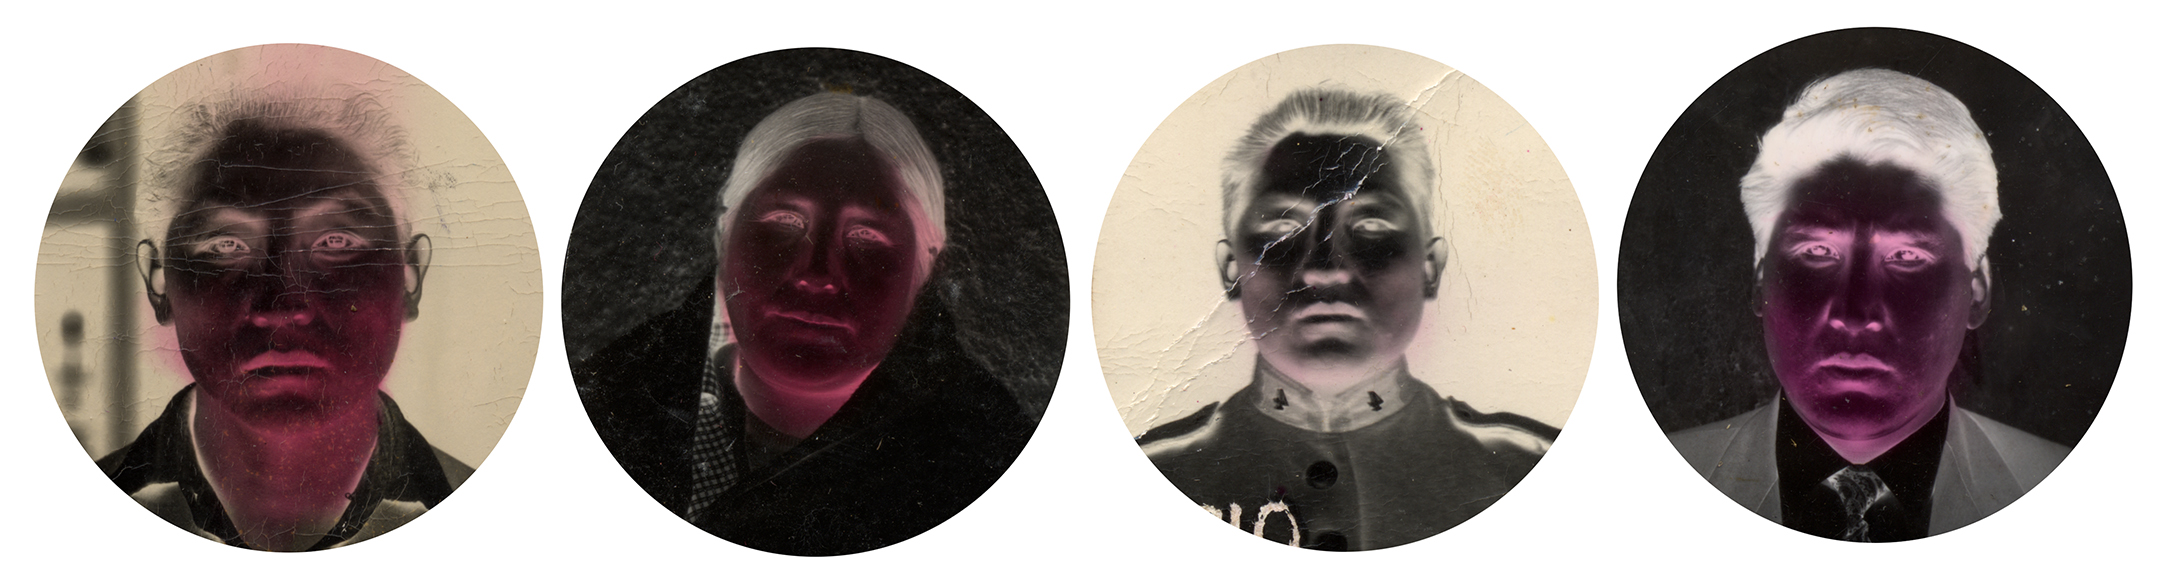 """Whitening Identities   Through applying red ink to the negative, the photographer makes the image lighter in tone. In this case, the photographer modifies the color of the faces of clients who ask him to, making them appear whiter. Fanon argues that colonized subjects internalize an inferiority complex induced by colonizers, which the colonized attempt to mediate by appropriating or emulating the culture of the colonizer—including appearance. Some clients consequently choose to modify their images to reflect an appearance more similar to the dominant perception of positive western attributes.   Process of """"One Minute PhotoPostcards.""""   Using photographic printing paper the photographer would expose a sheet of paper to obtain a negative image, the entire process involves developing, stopping, and fixing the image inside the camera itself, protected by a fabric that covers the photographer to insulate the process. During the process of negative creation, the image can be manipulated to change tonalities. In that context brushing the negative with red ink provides a filter to obtain a lighter tonality on the skin. The negative is then placed on a stand in front of the camera and photographed (to obtain a positive), developed, stopped, and fixed, and then the final print is washed in a can of water attached to the tripod."""